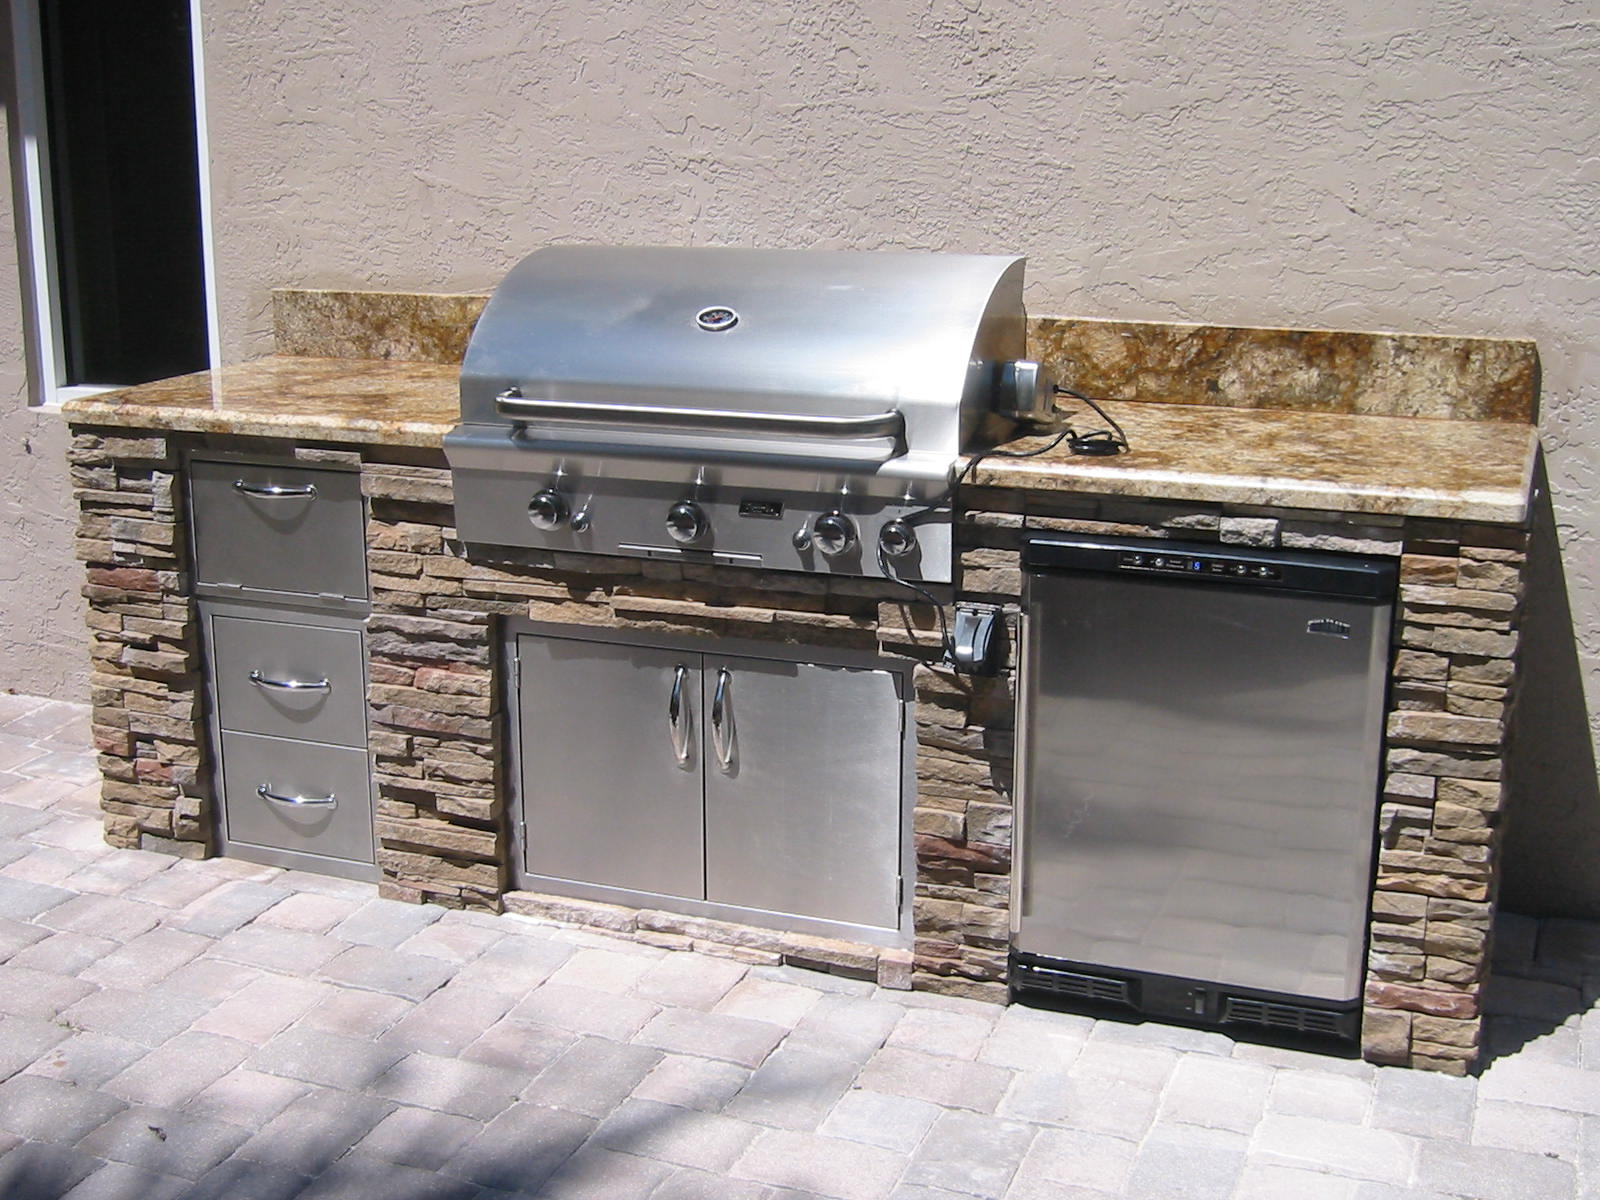 Stunning BBQ Outdoor Kitchen Grill Islands 1600 x 1200 · 294 kB · jpeg